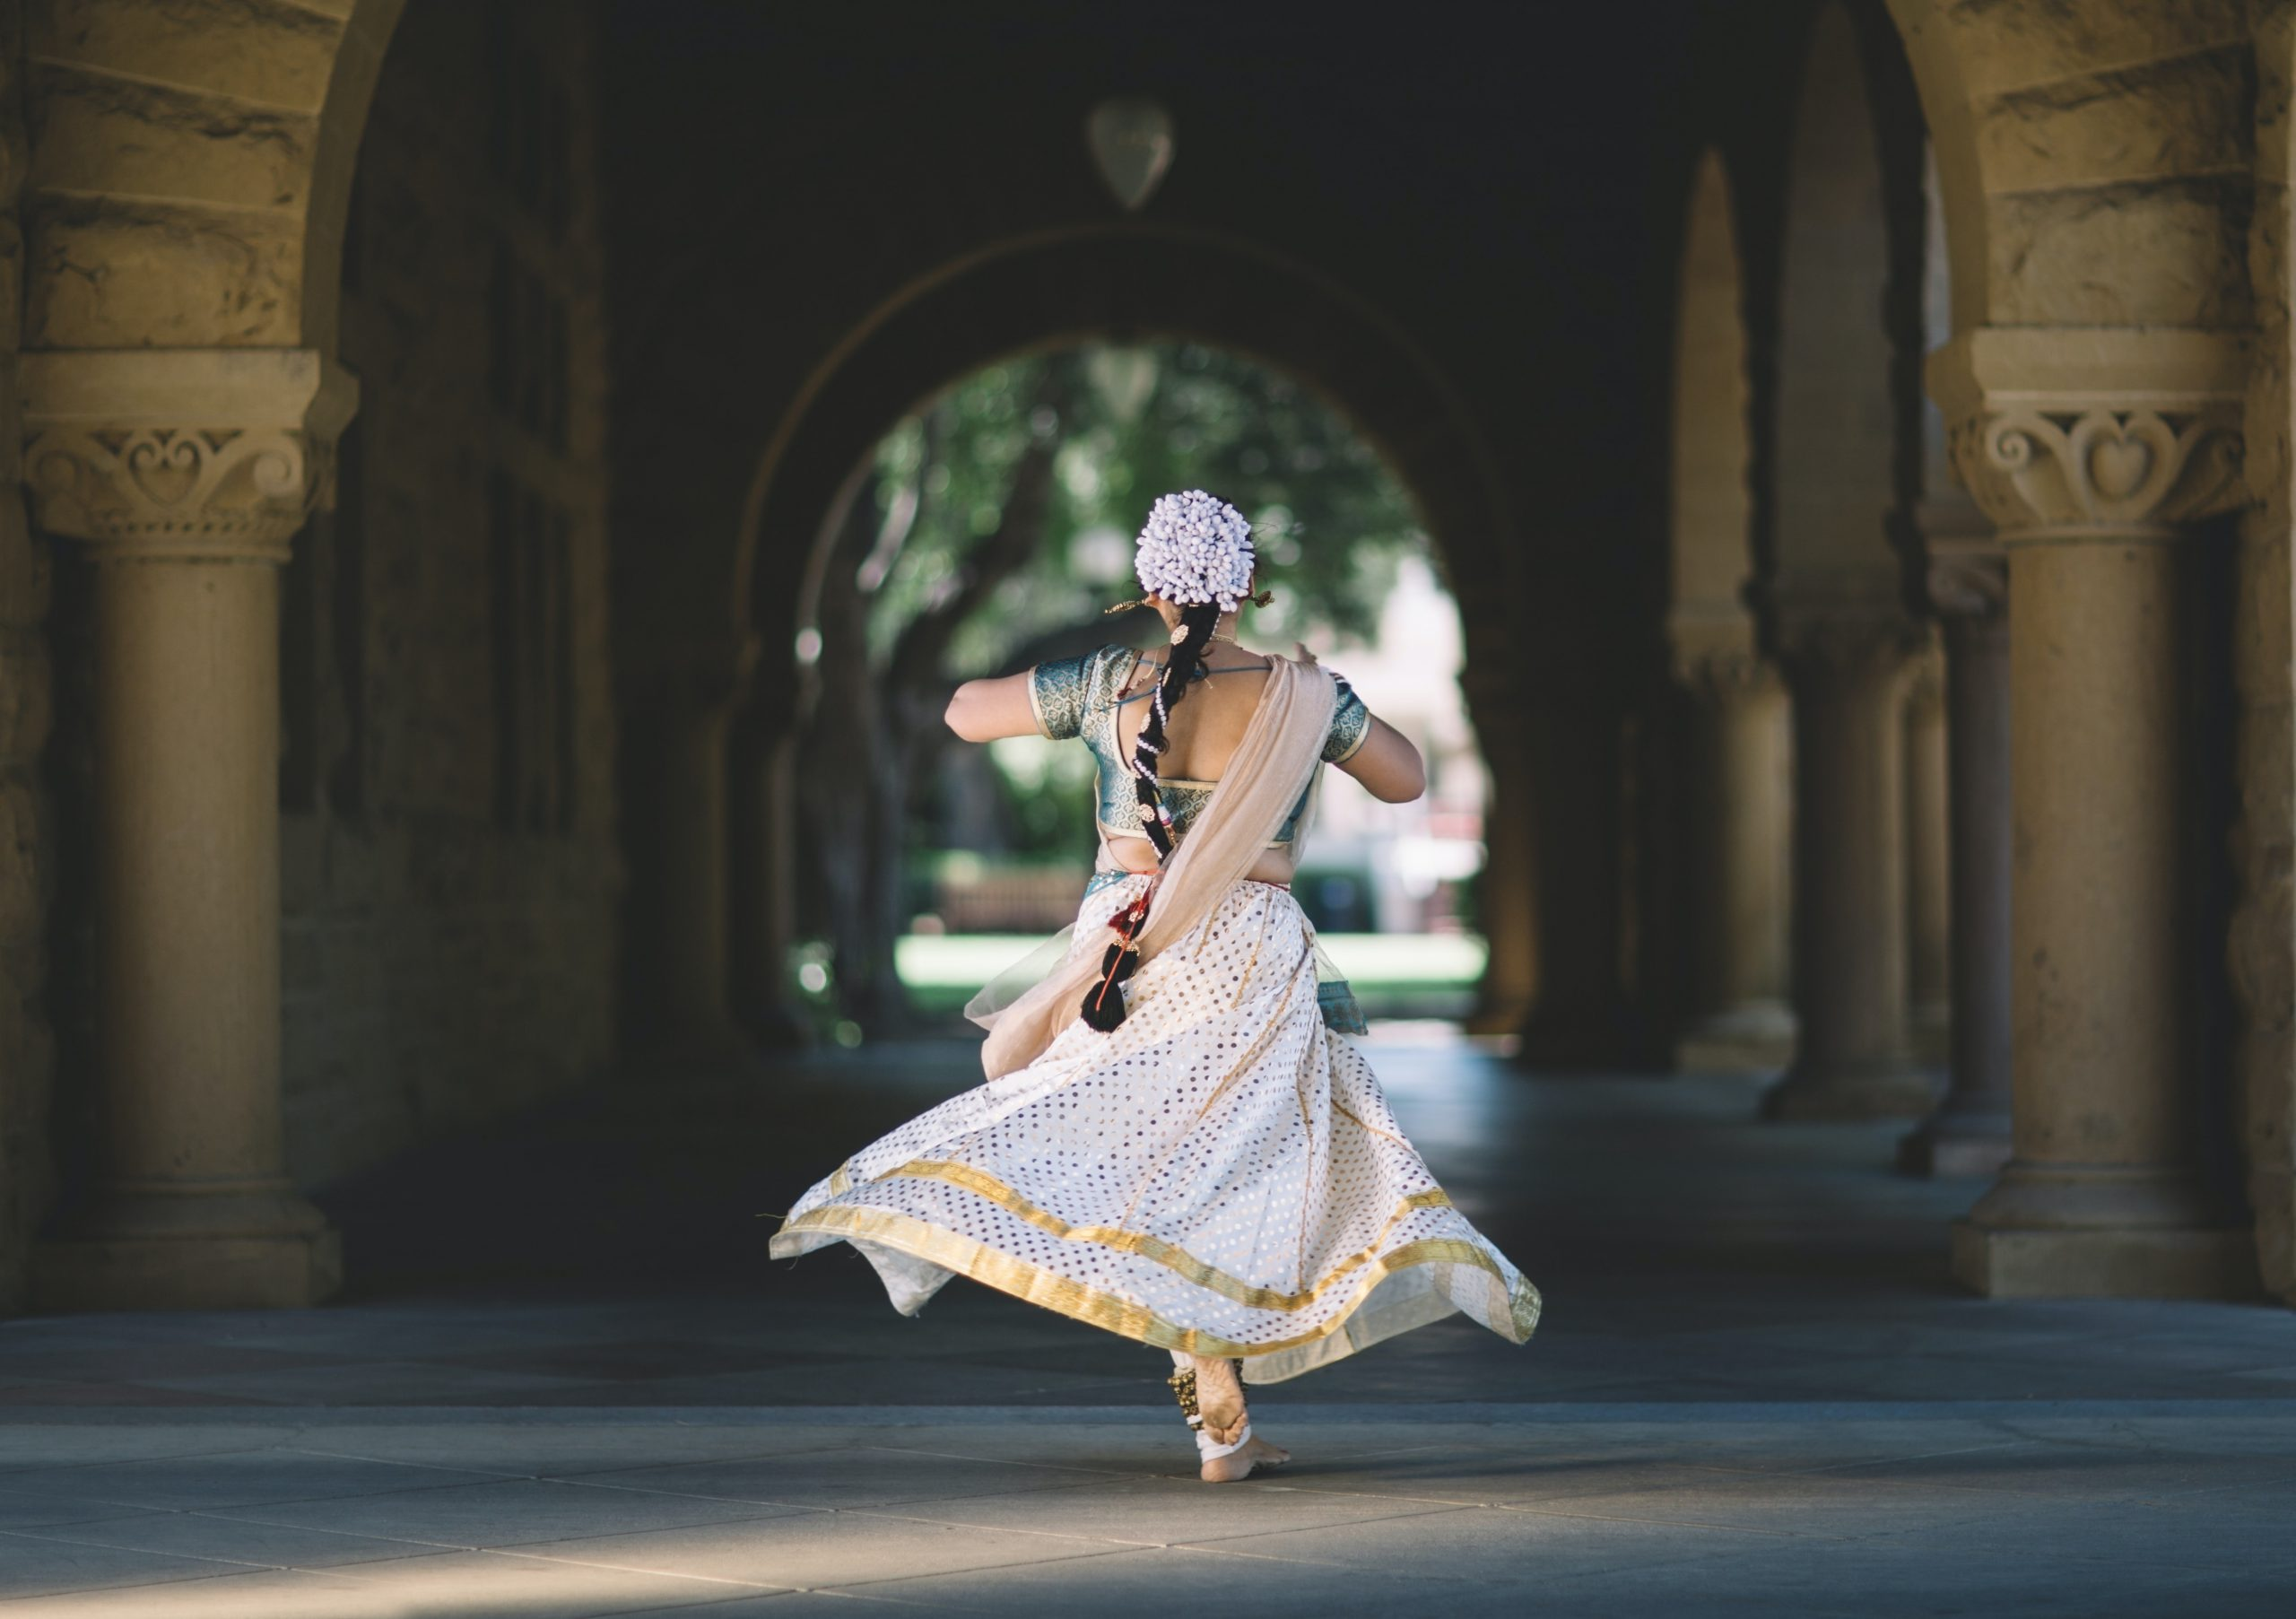 In ancient northern India, Kathakas communicated stories from the great epics and ancient mythology through dance. Characterized by intricate footwork and precise rhythmic patterns, Kathak is one of the most complex Indian classical dance. Had privilege to experience it in real through a close friend of mine.